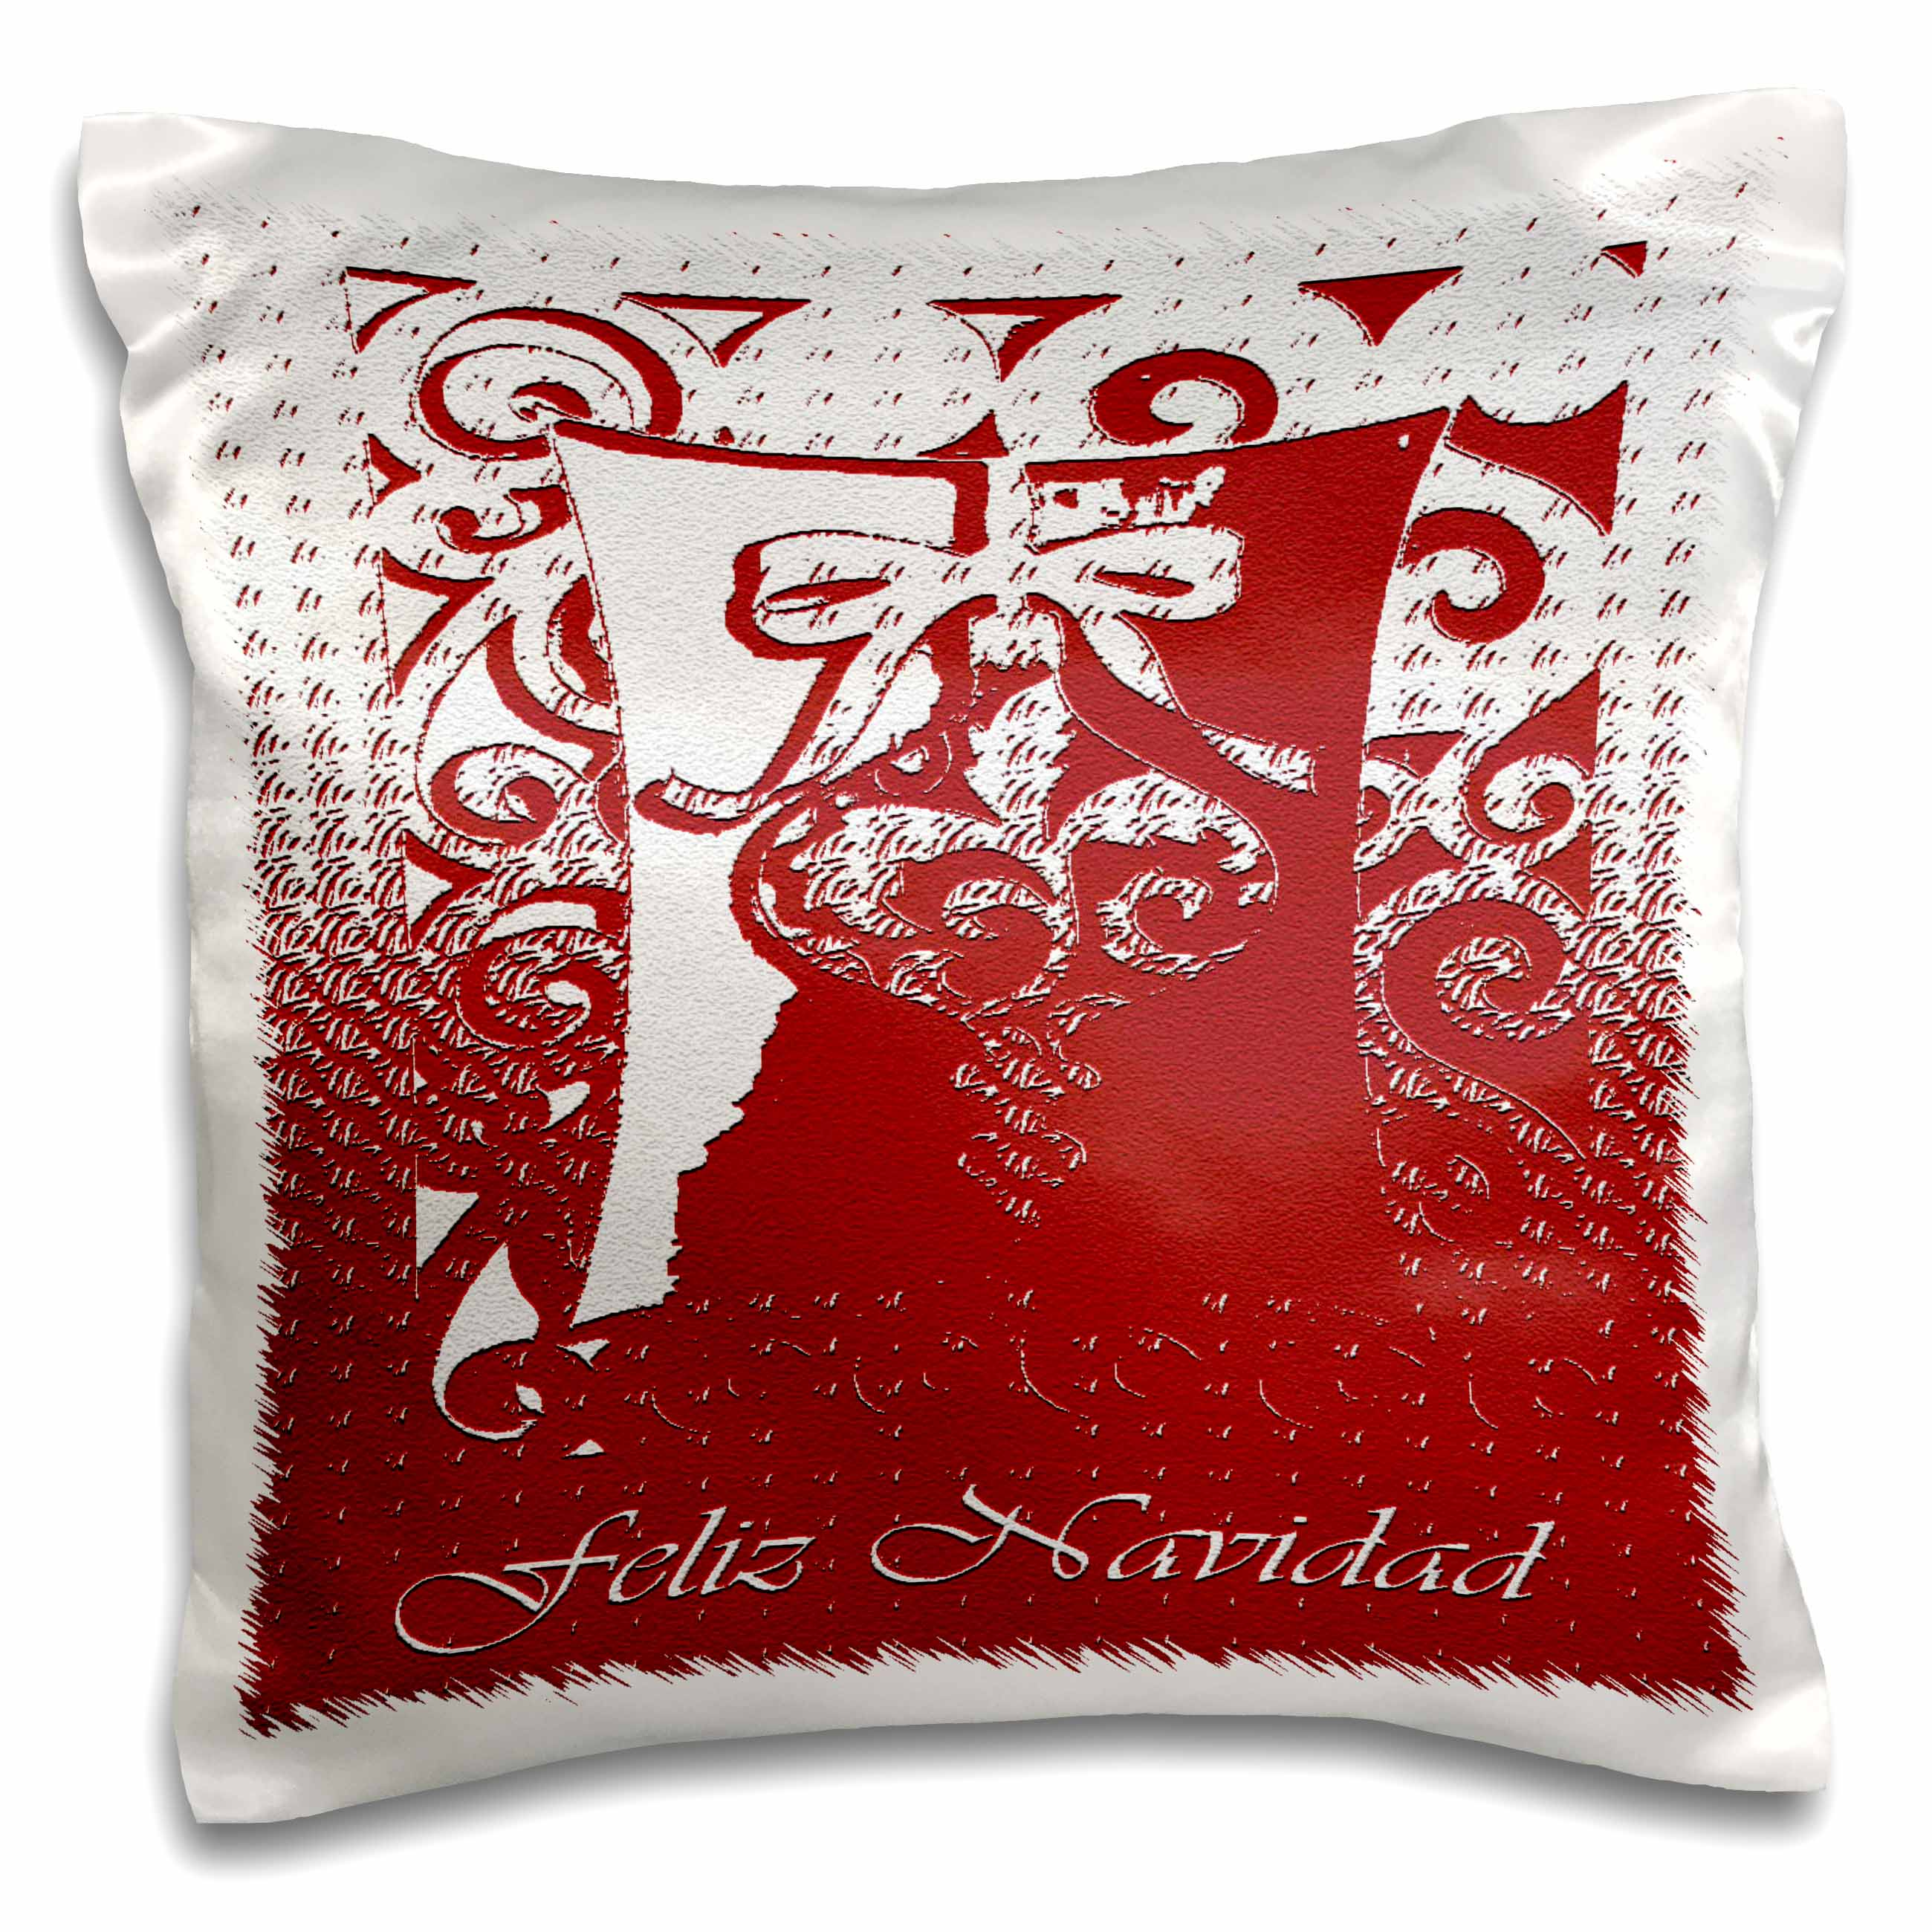 3dRose Feliz Navidad Merry Christmas in Spanish Red Ornament, Pillow Case, 16 by 16-inch